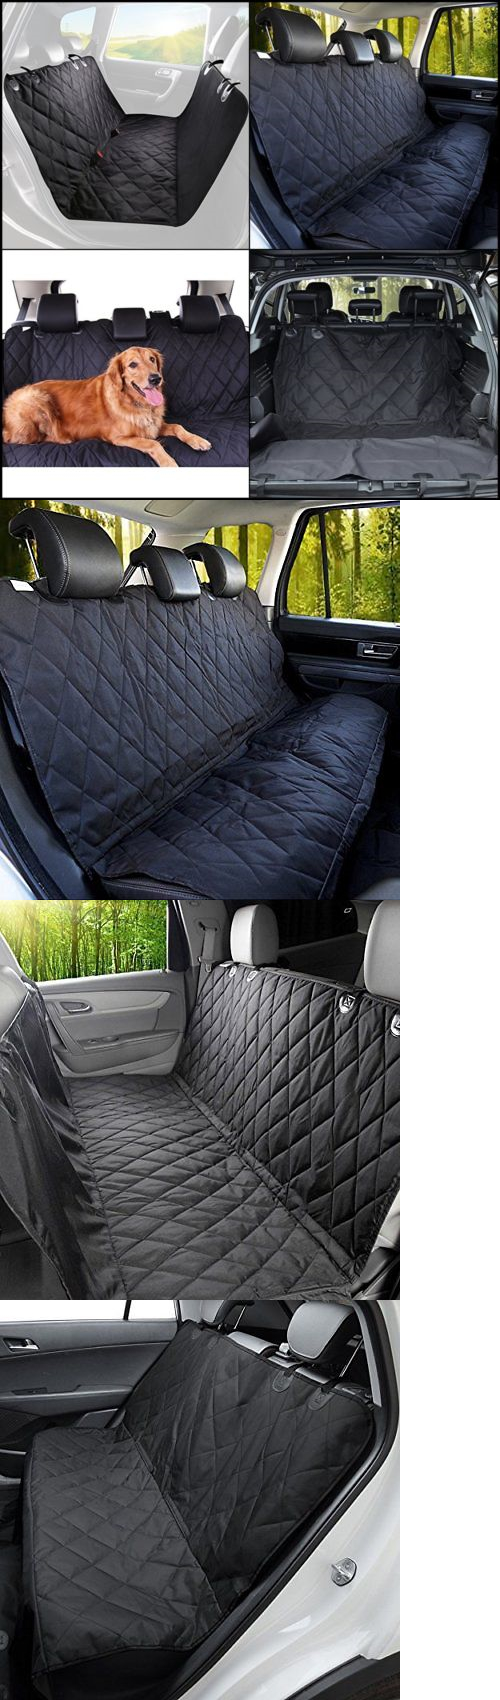 Car Seat Covers 117426 Back Waterproof For Truck Suv Van Pets Dog